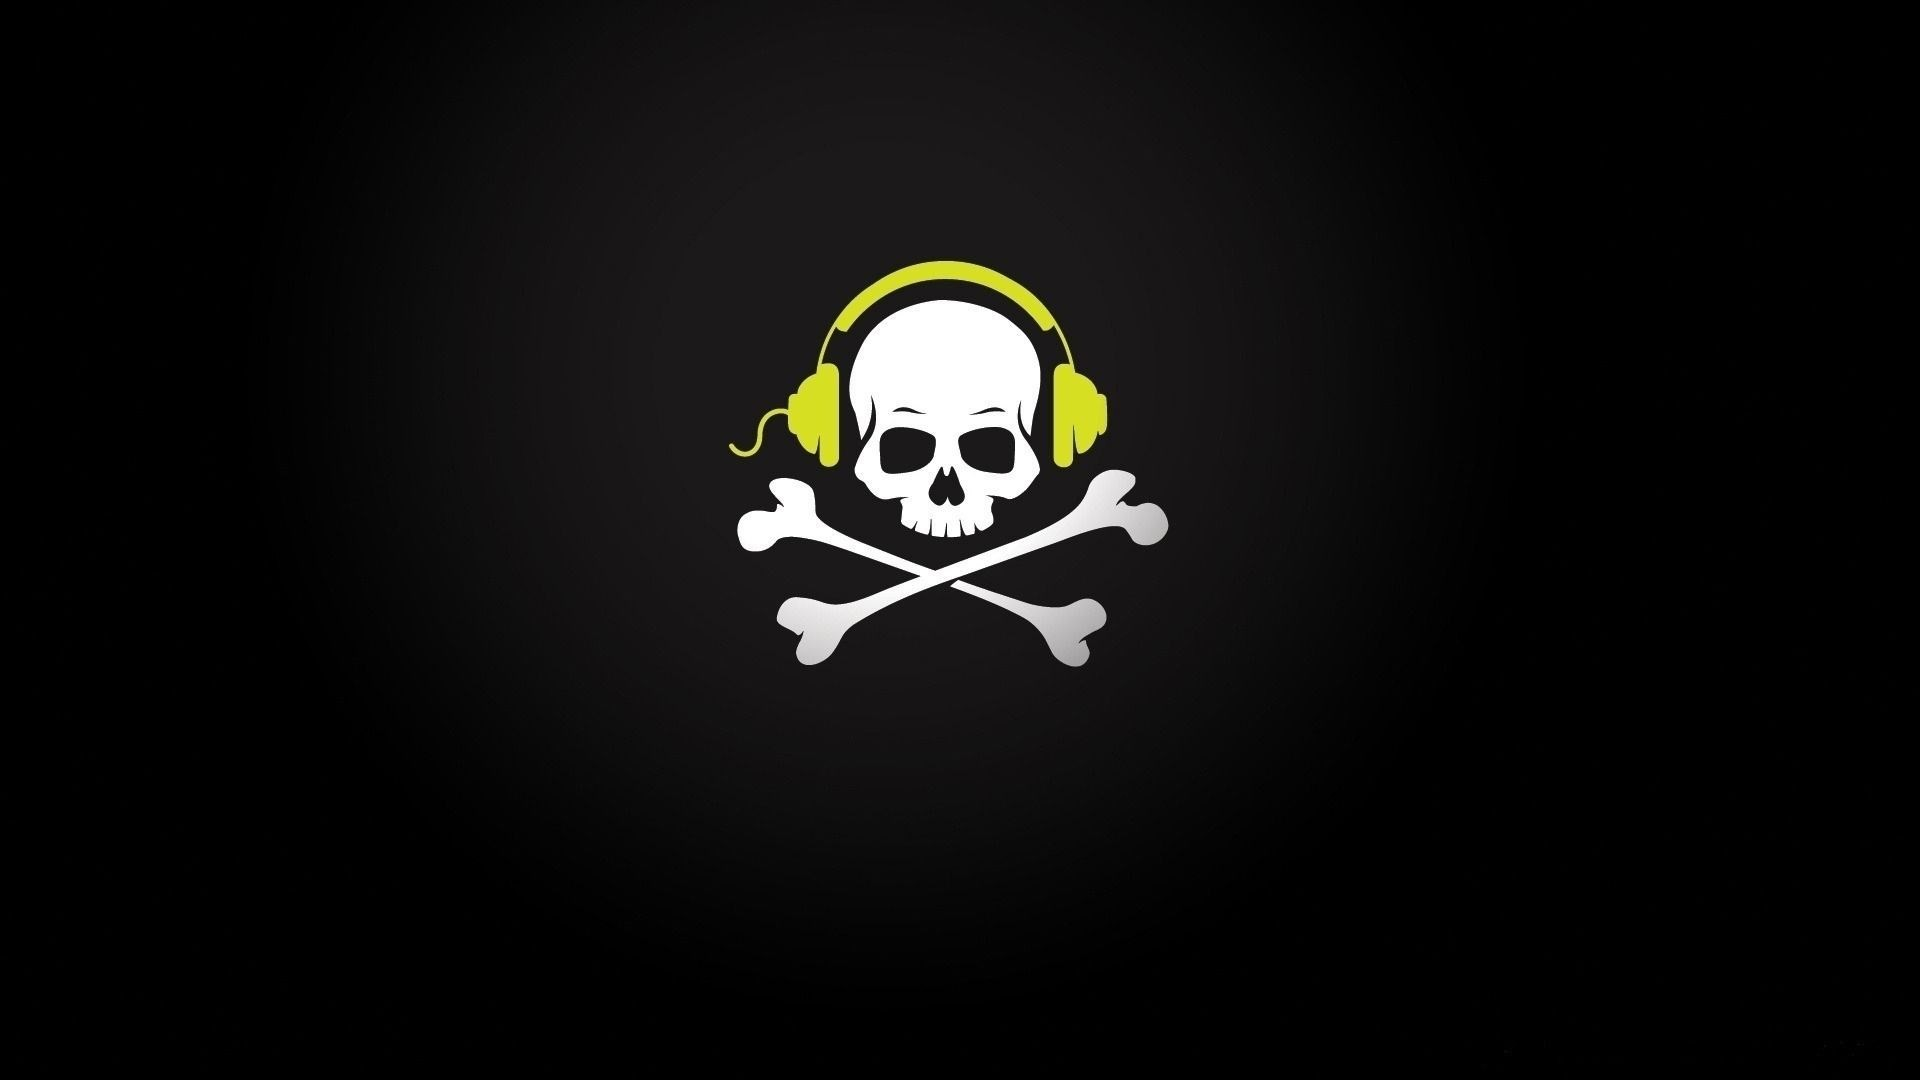 1920x1080 skull music wallpaper